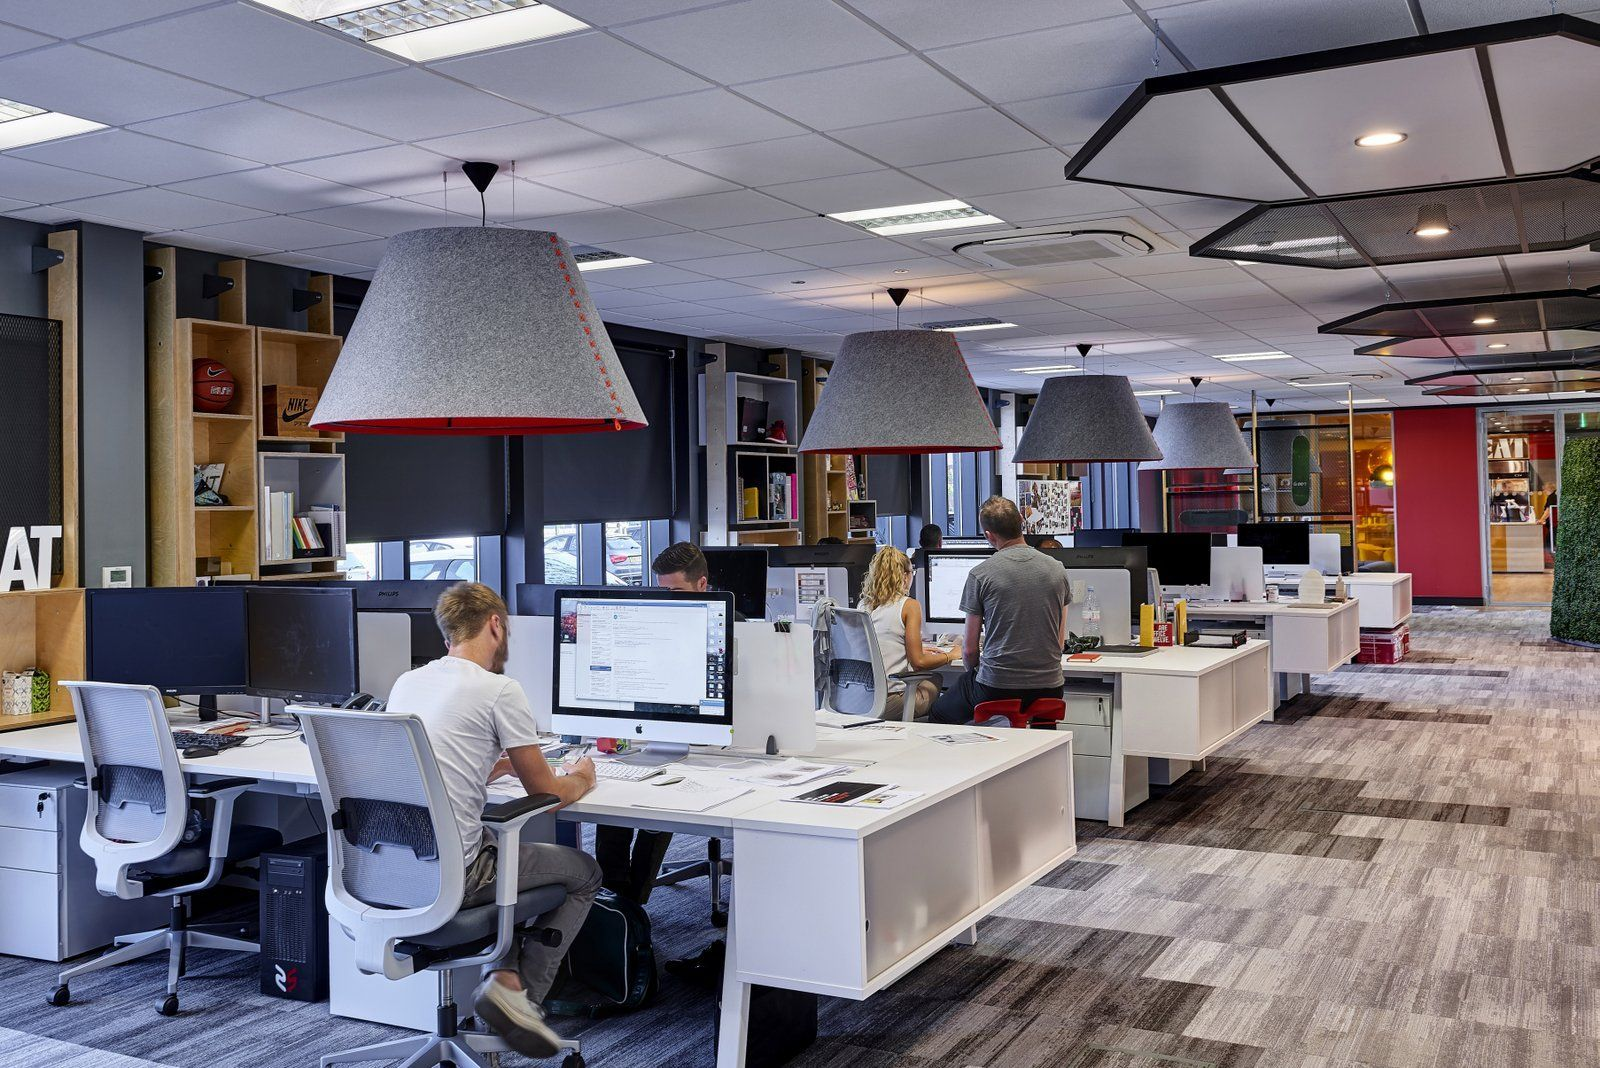 Forget Hot Desking and Open Plans – Here's a Law Firm Going Back to Private  Spaces | Commercial office design, Open office design, Office layout